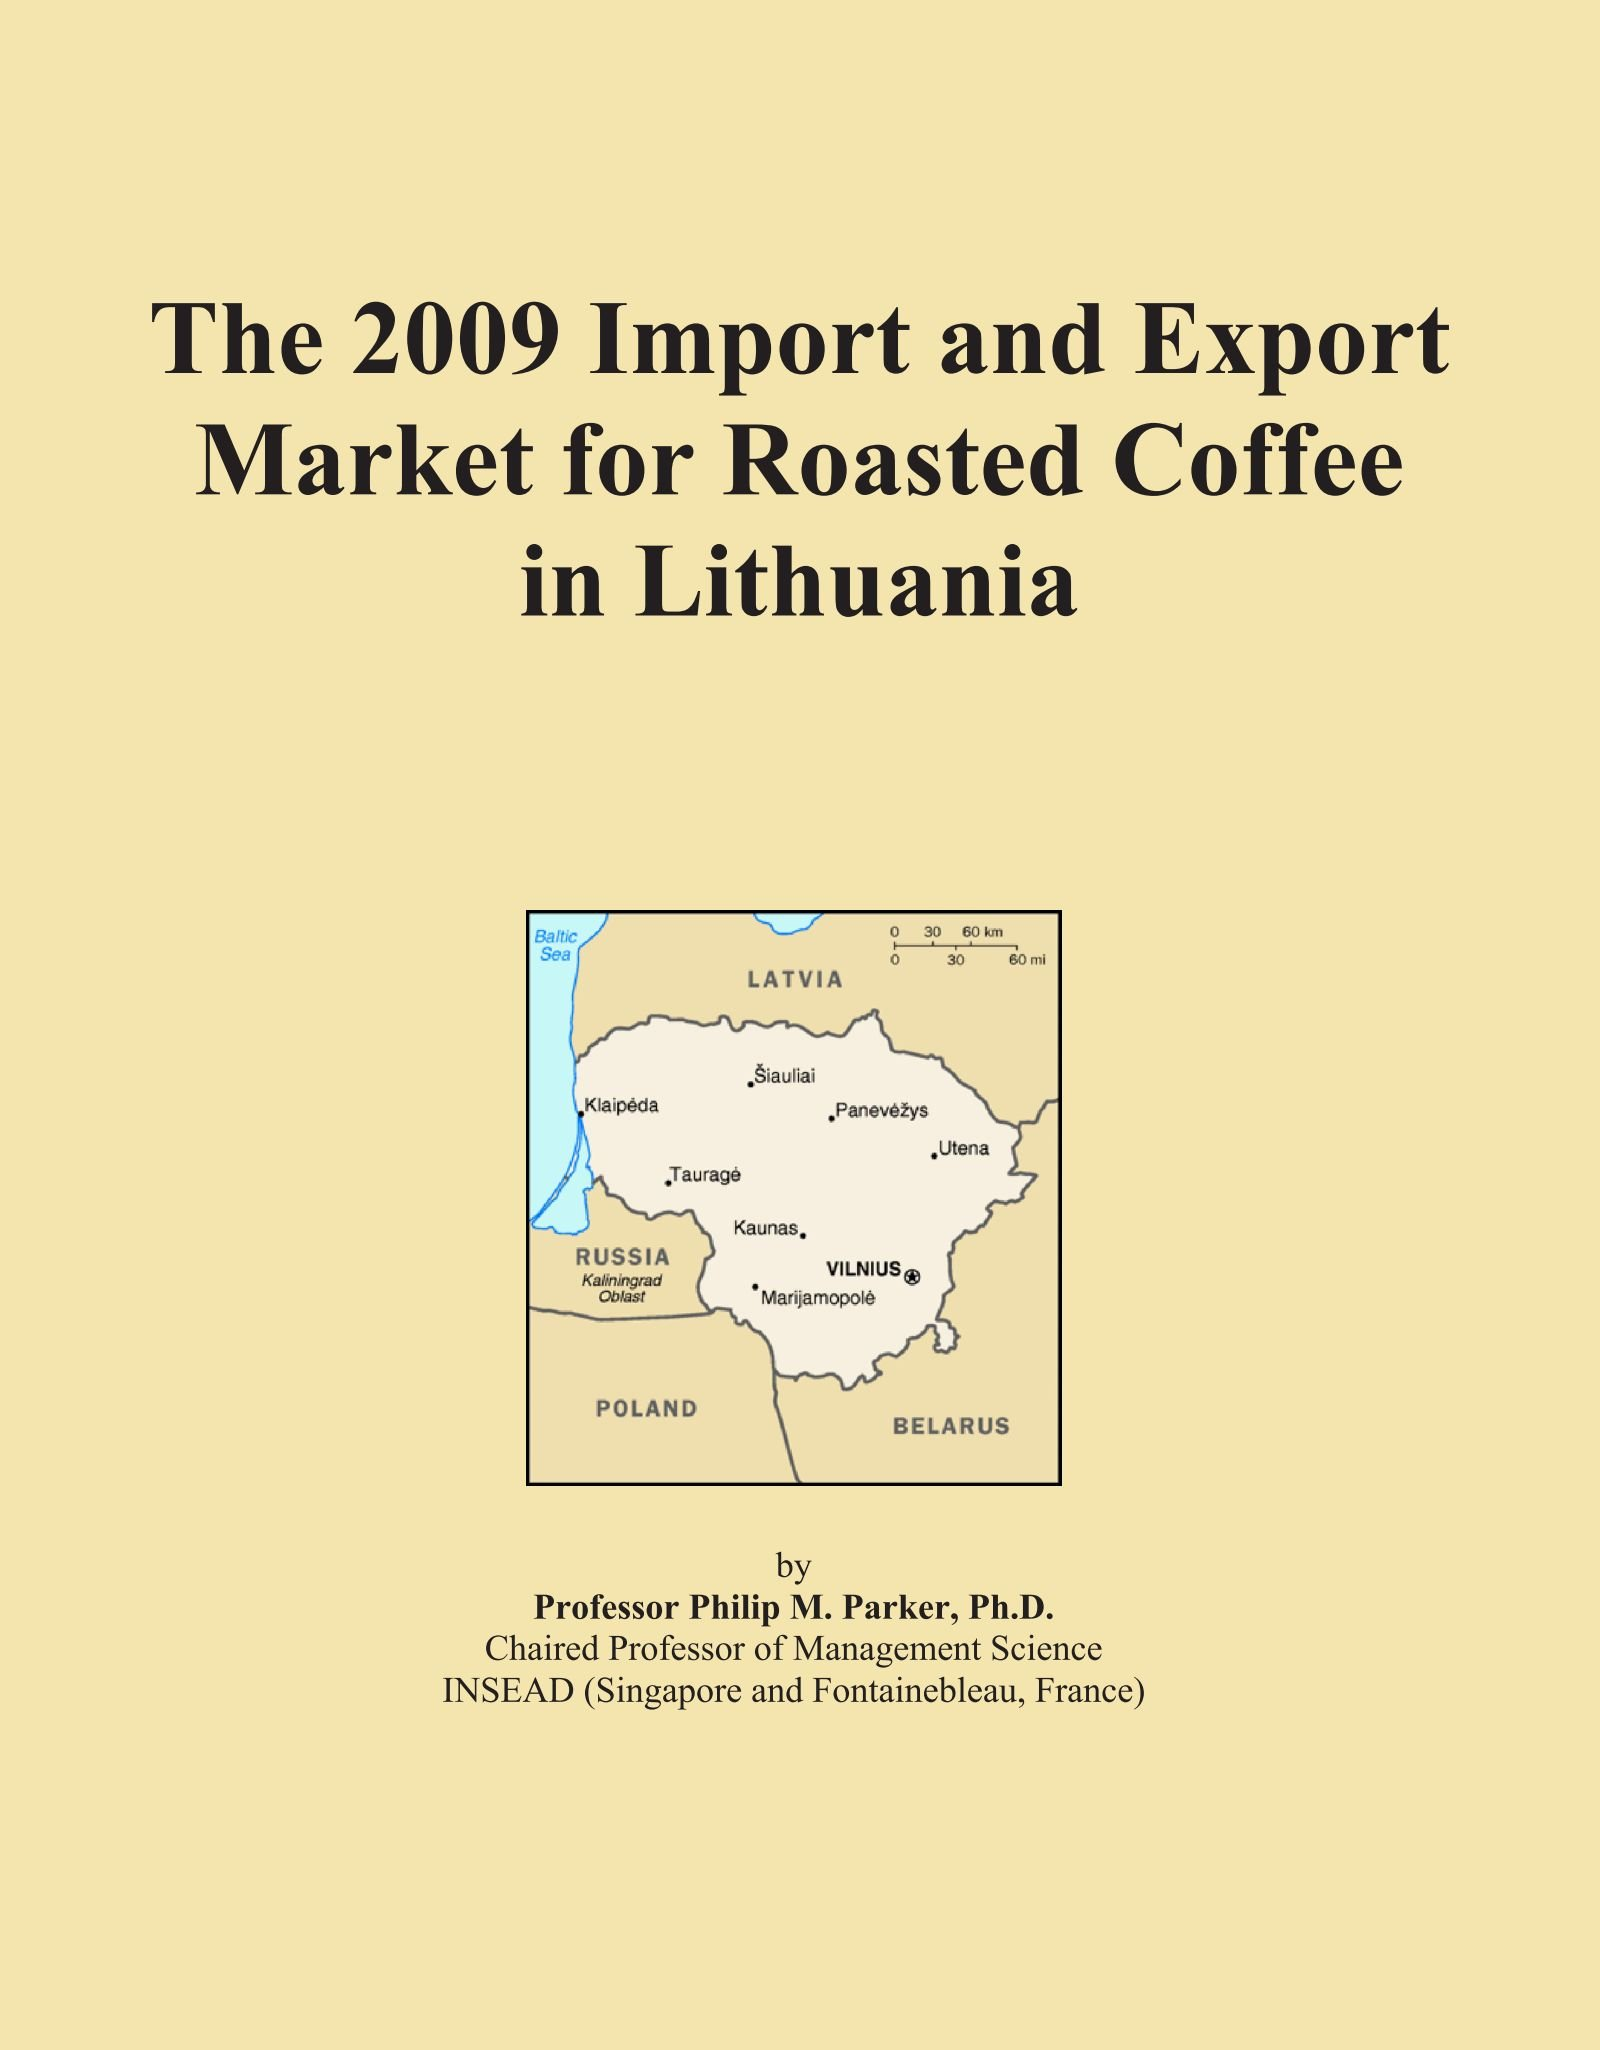 The 2009 Import and Export Market for Roasted Coffee in Lithuania PDF